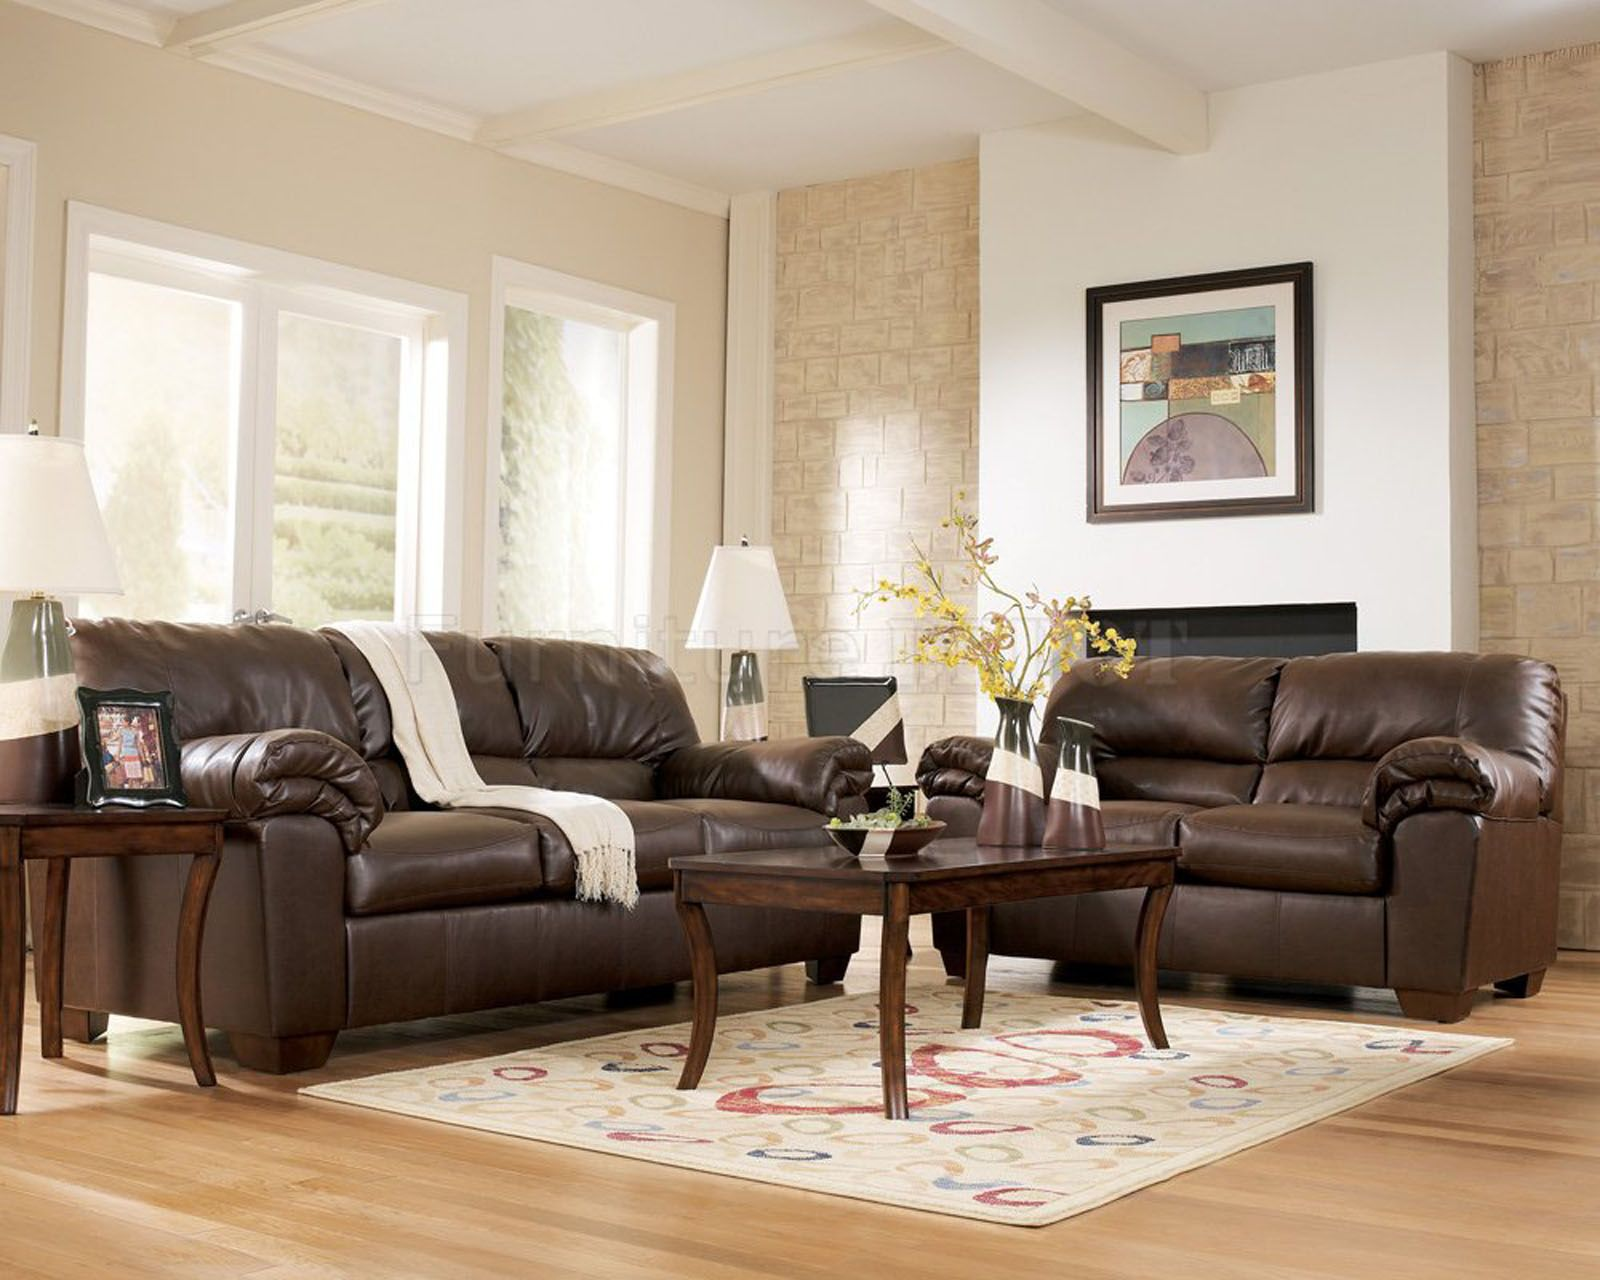 Front room colour schemes - Small Living Room Colour Ideas E2 80 93 Home Decorating Clipgoo